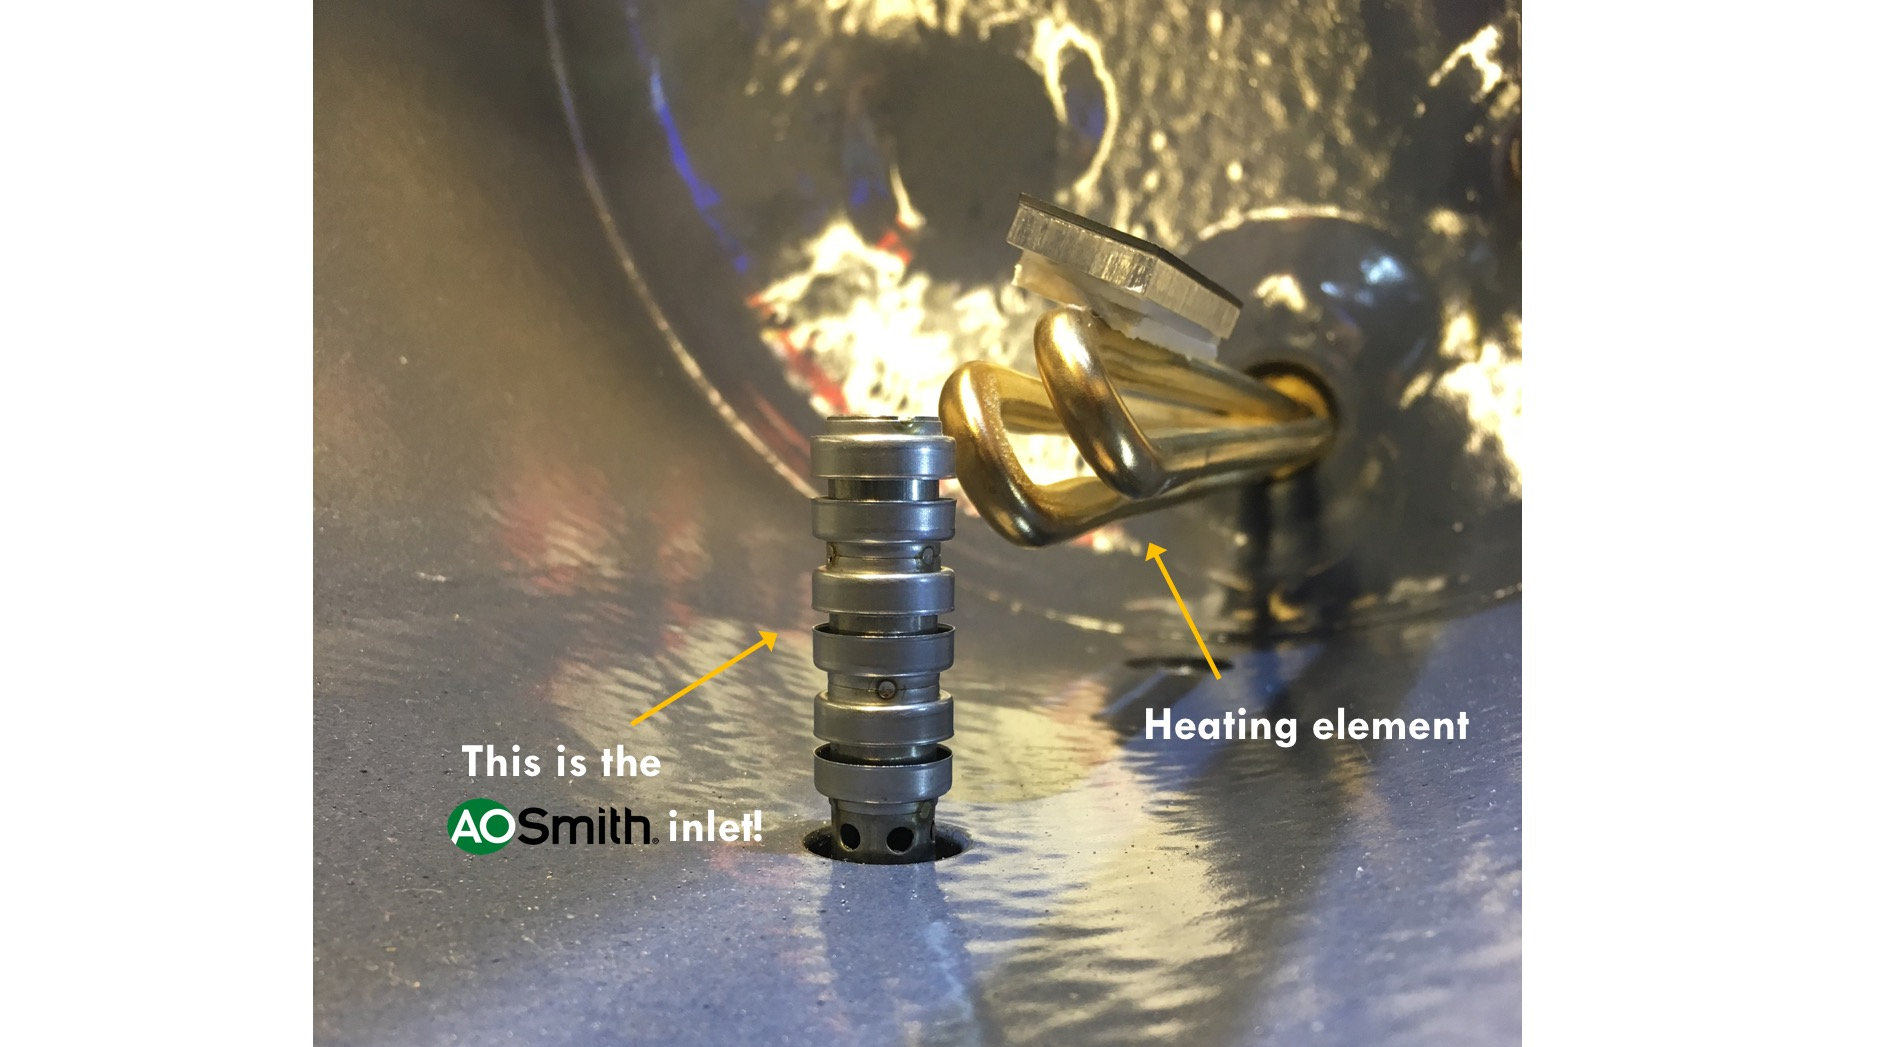 AOS inlet and heating element - Water Heater Singapore